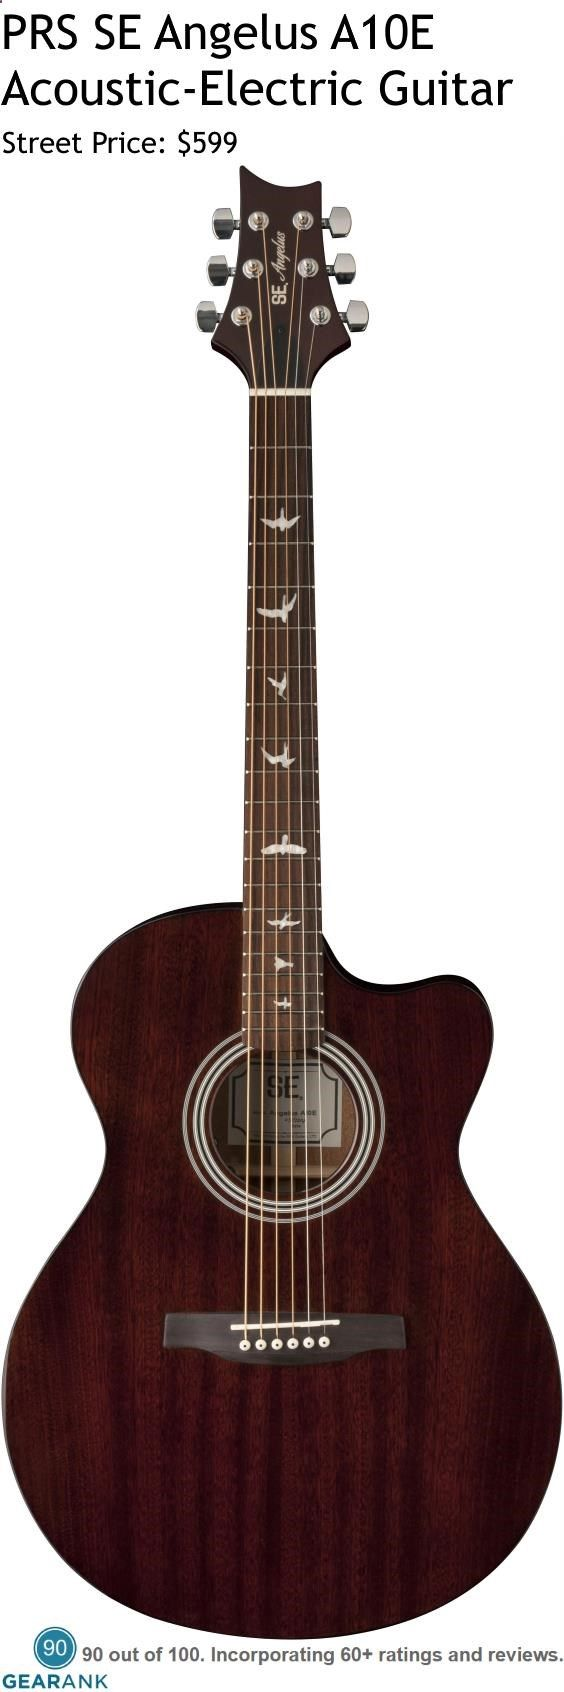 1be7ac74db7 PRS SE Angelus A10E Acoustic-Electric Guitar. This is an all-mahogany guitar  with a solid top and laminated back and sides. It uses an Undersaddle  pickup ...